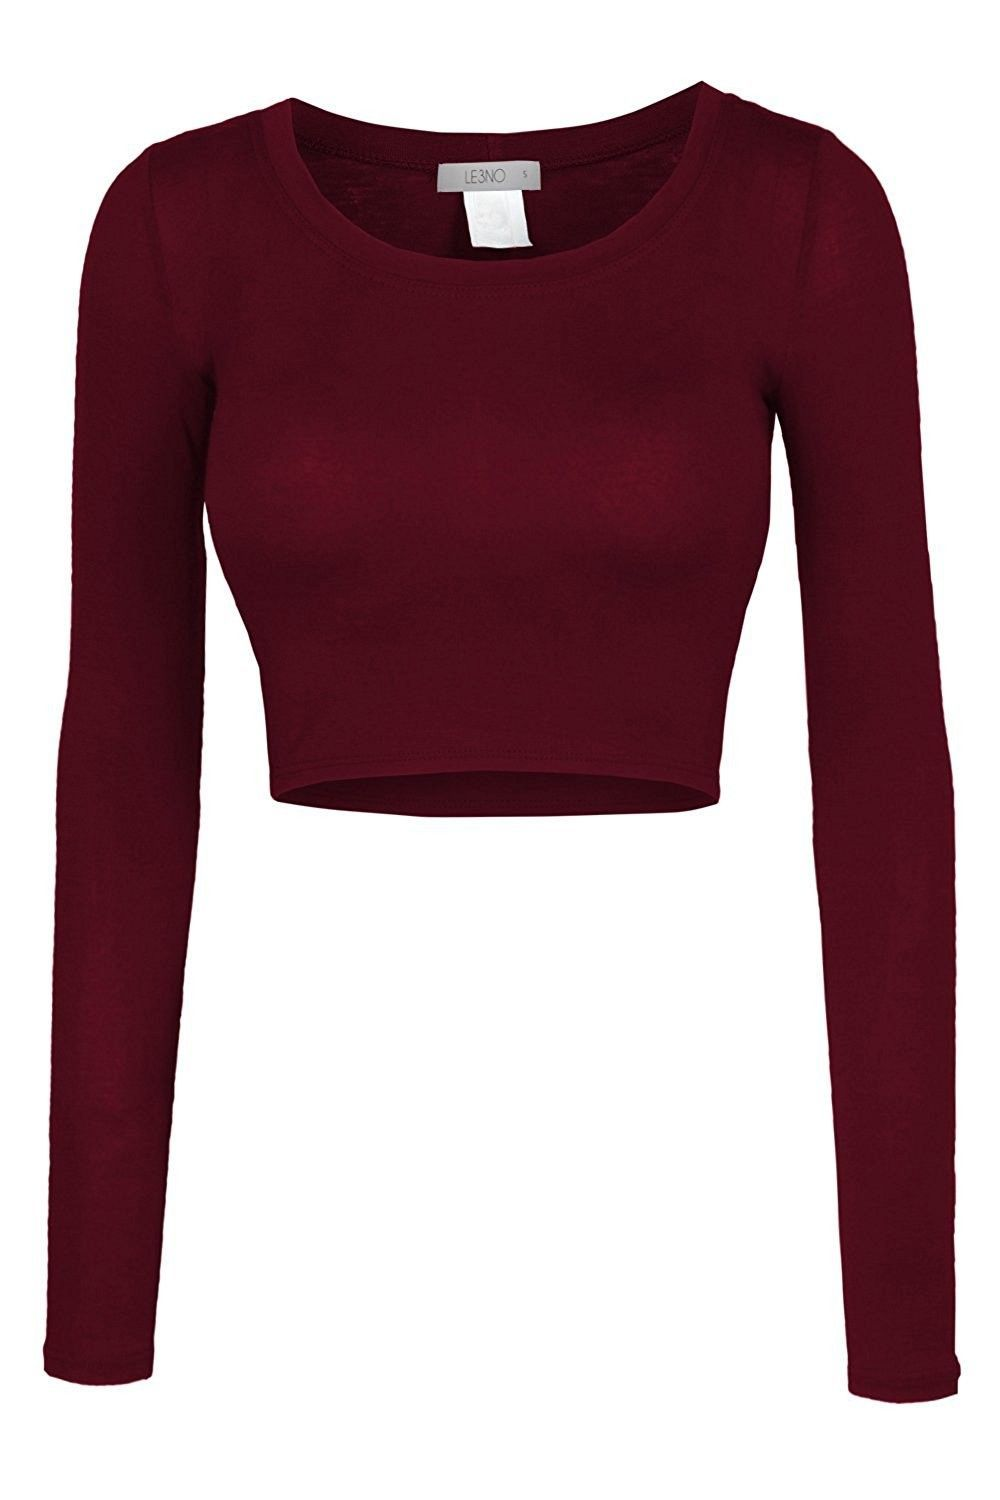 aad48273e9d16 Womens Fitted Long Sleeve Crop Top with Stretch - L3nwt1073 burgundy ...